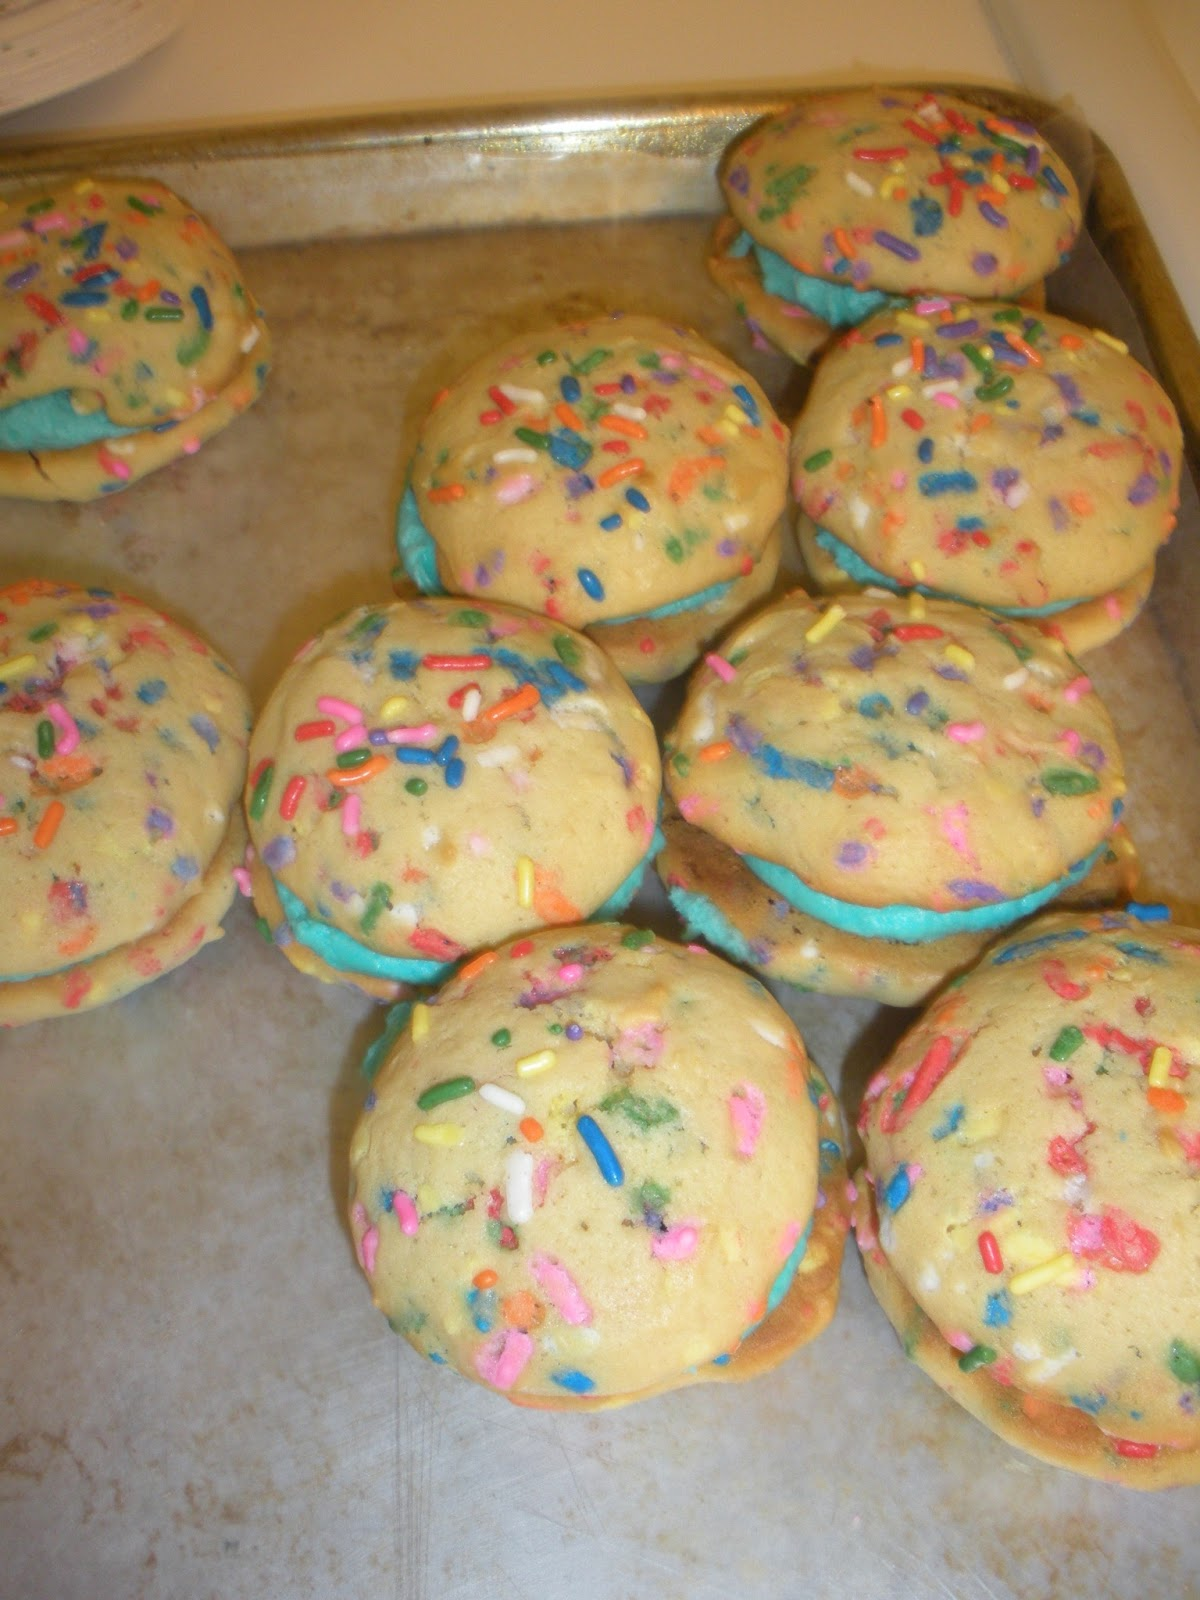 Birthday Cake Whoopie Pies Adapted From By Sarah Billingsley And Amy Treadwell